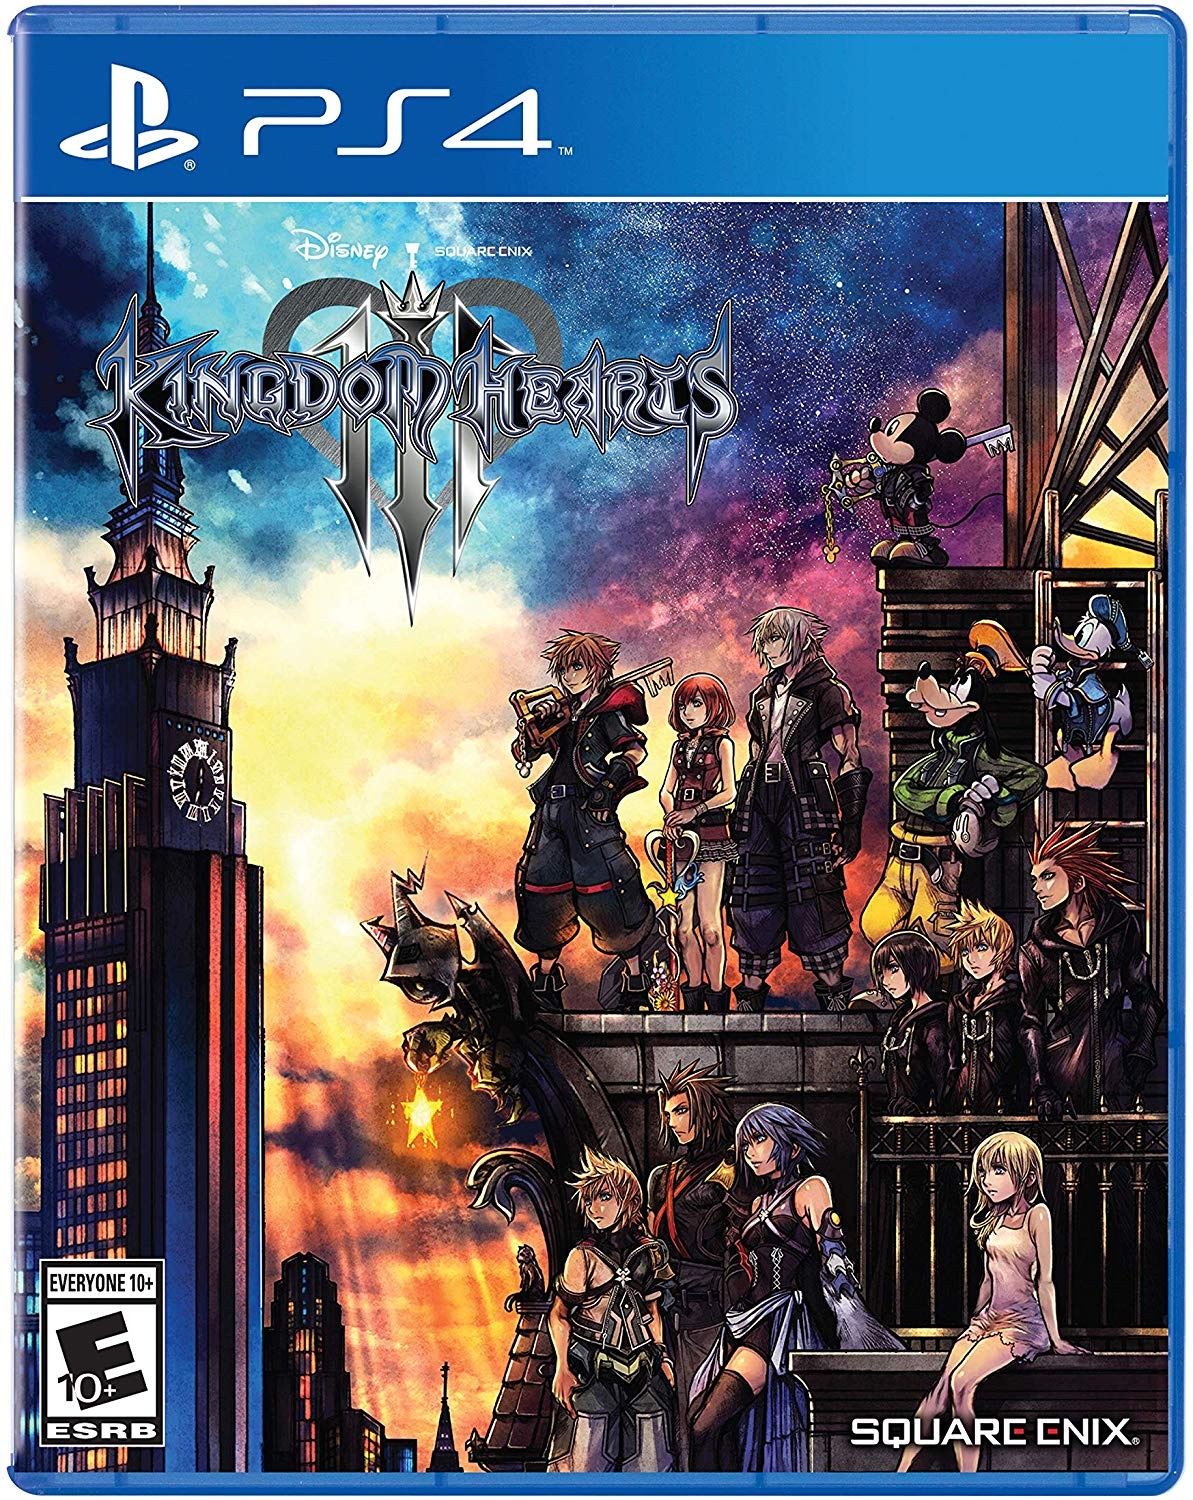 PS4 Kingdom Hearts 3 em Espanol e Ingles